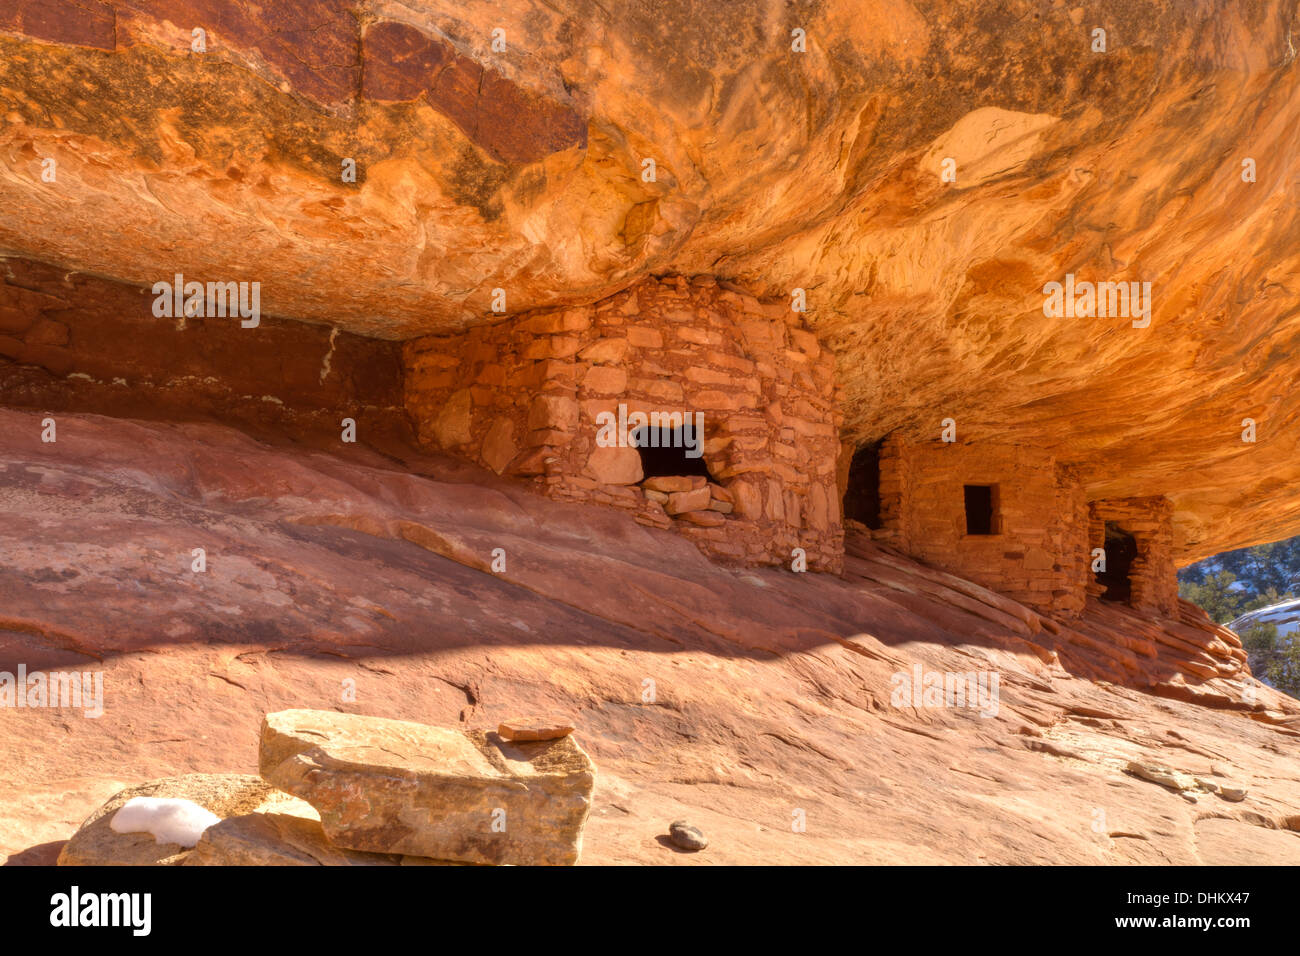 The 'House on Fire' Puebloan ruins under a cliff in Mule Canyon in the Cedar Mesa Plateau of Utah - Stock Image